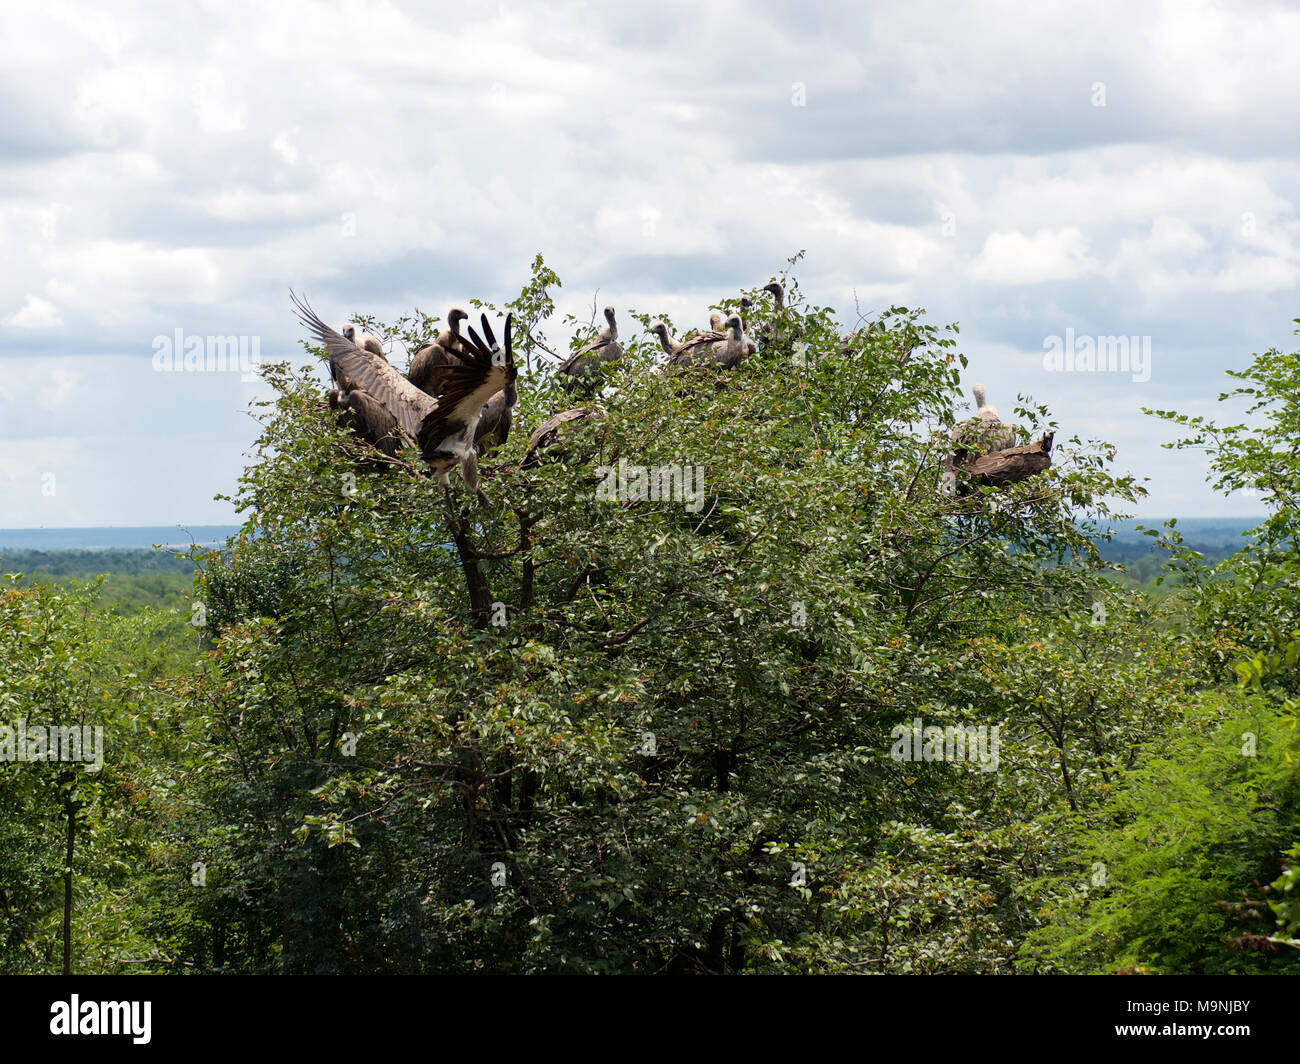 White Headed, Hooded, Lappet Faced, Cape, White-Backed Vultures and Marabou Storks circle and feed on a carcass in Zimbabwe National Park Stock Photo